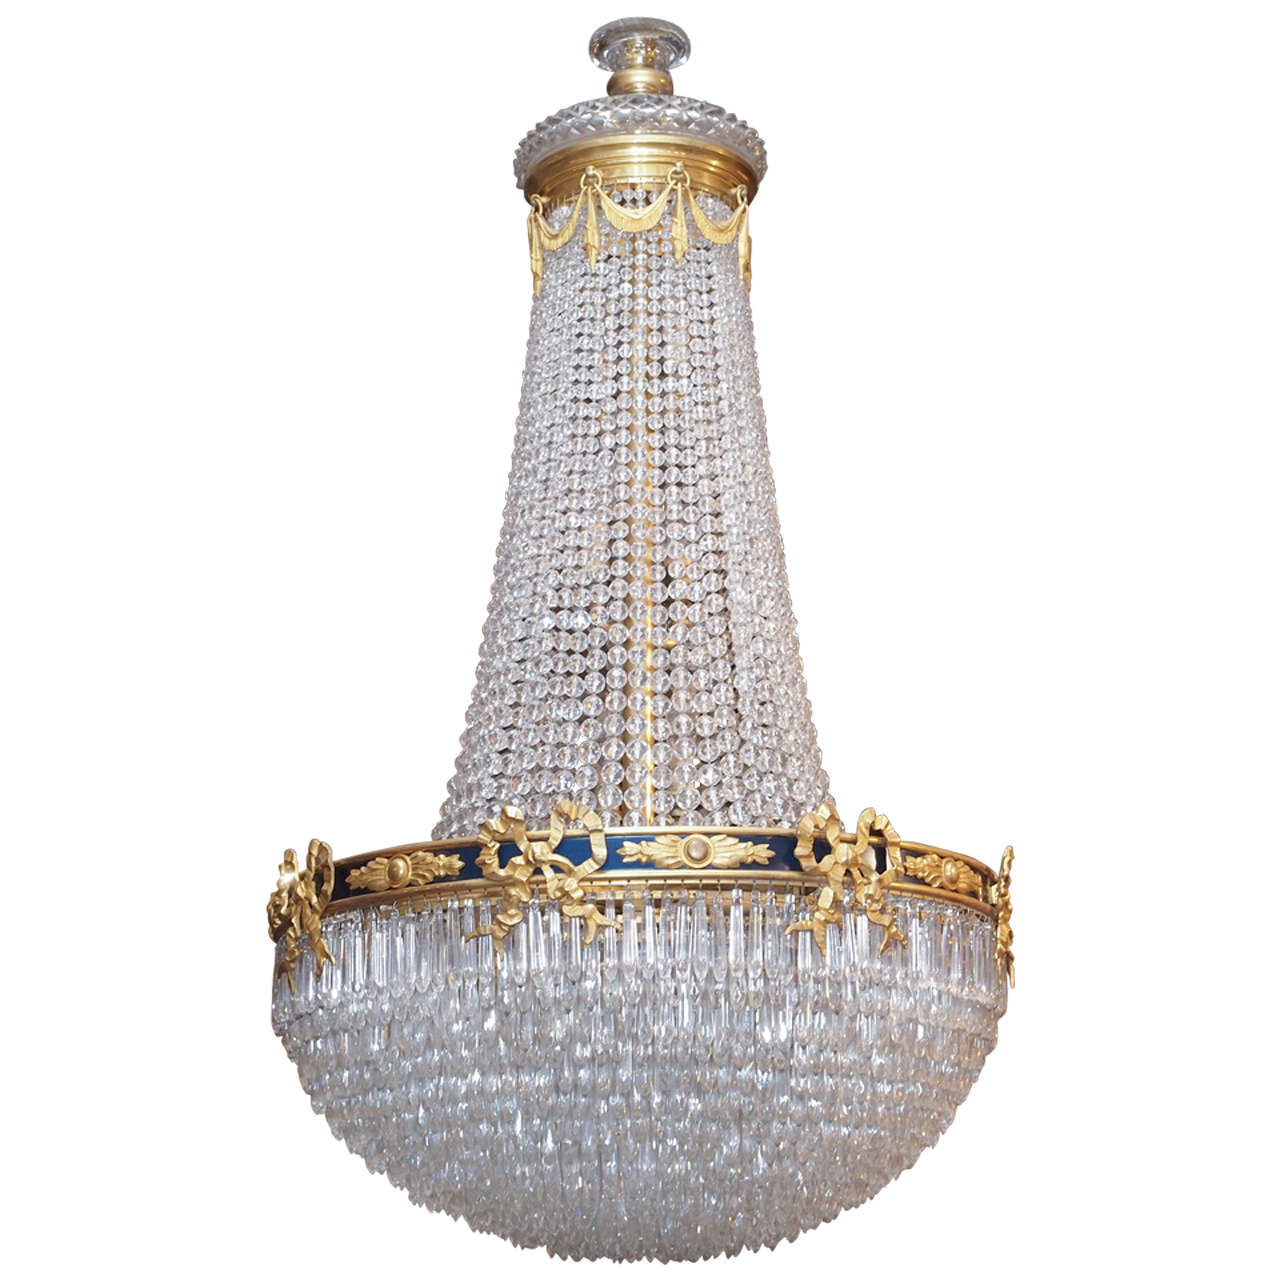 antique empire exceptional baccarat waterfall chandelier. Black Bedroom Furniture Sets. Home Design Ideas